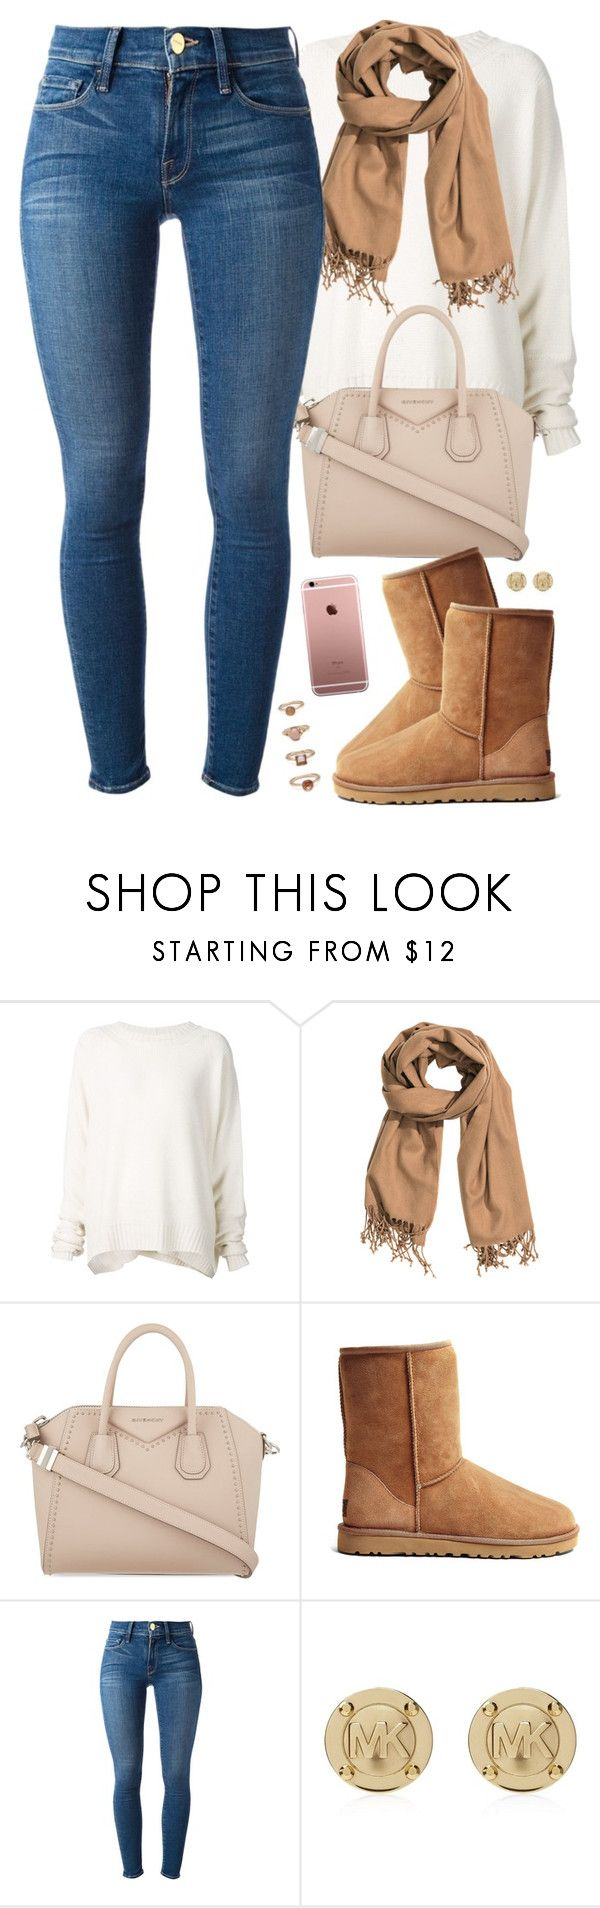 fall mood by daisym0nste on Polyvore featuring URBAN ZEN, Frame Denim, UGG Australia, Givenchy, Forever 21, Michael Kors and H&M